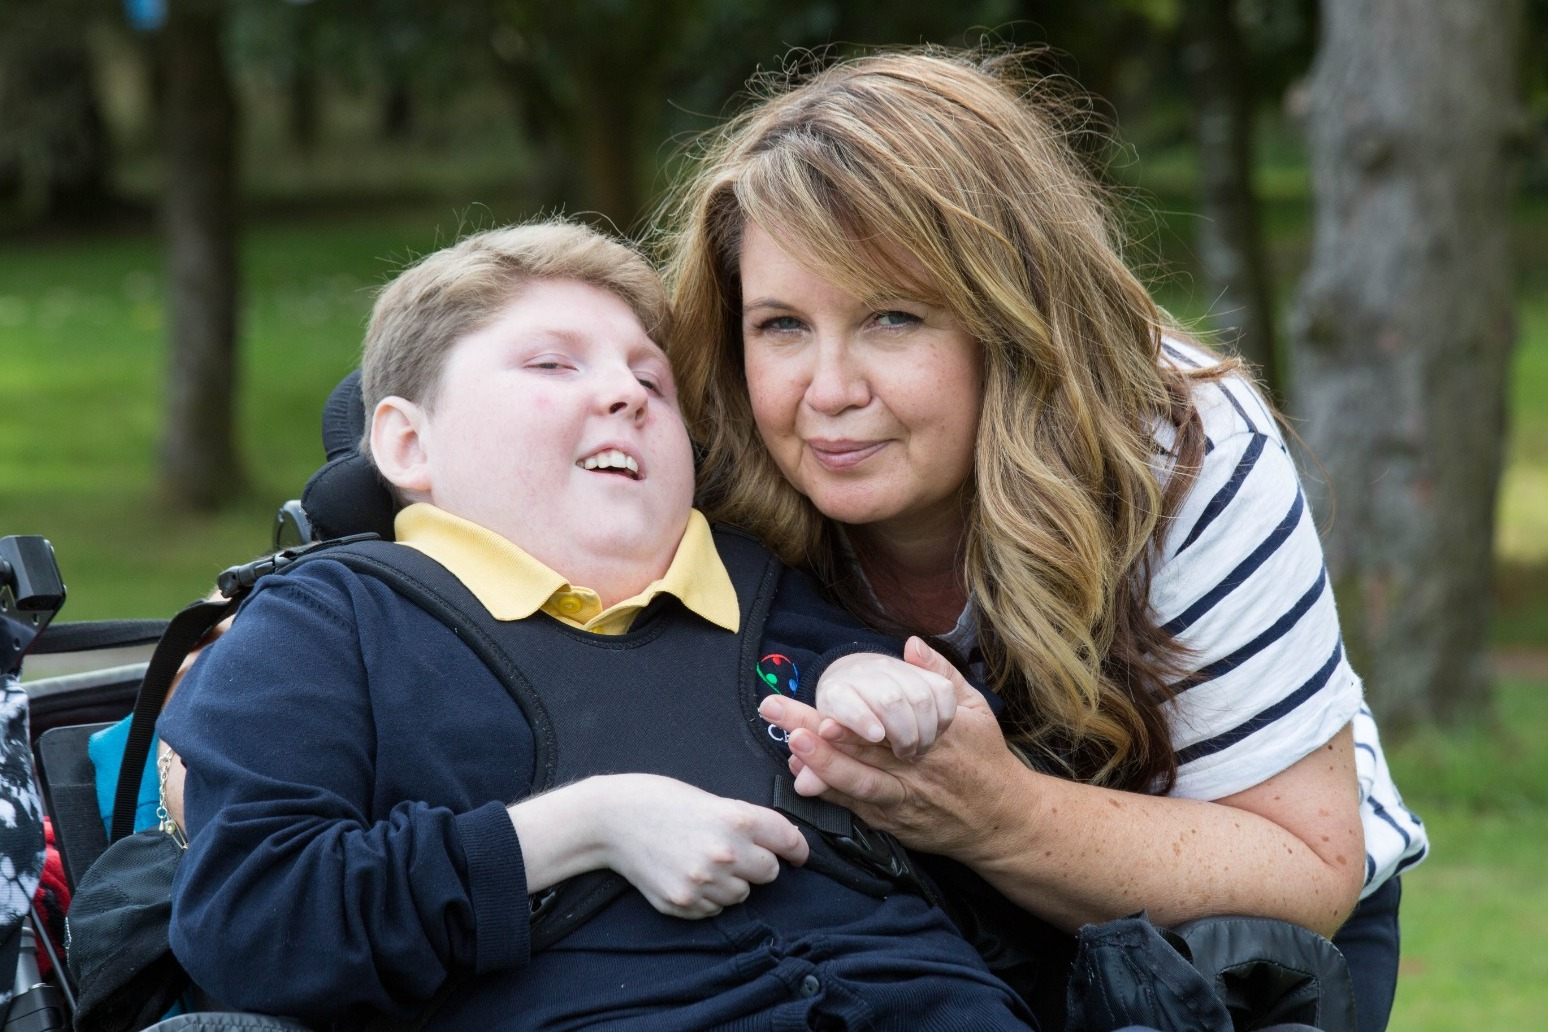 Mother of disabled 13-year-old says: 'Vaccine will let him experience life'